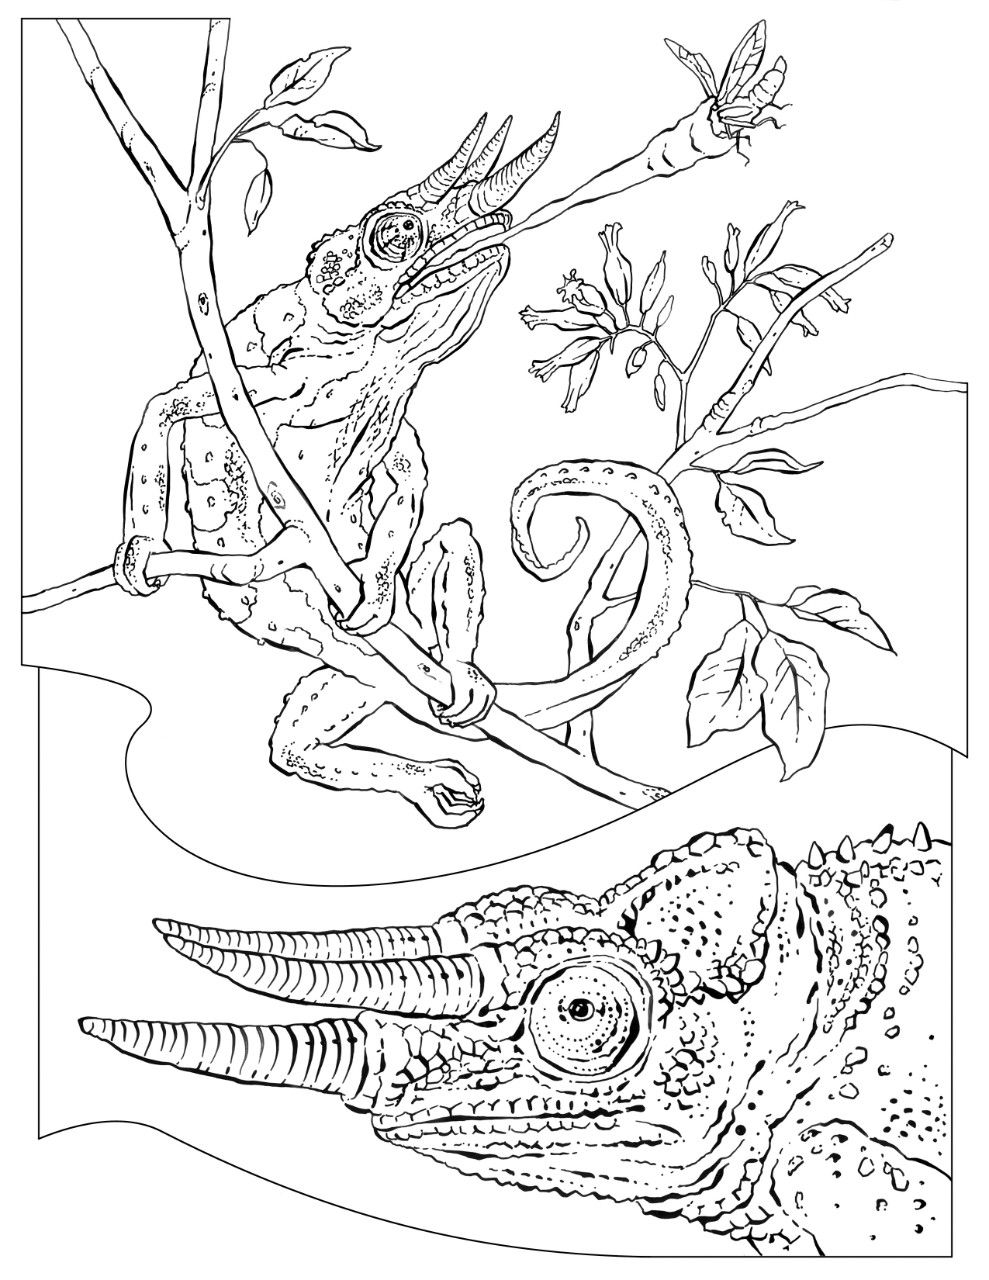 1400699240123 Jpg 989 1280 Coloring Books Coloring Pages Fish Coloring Page